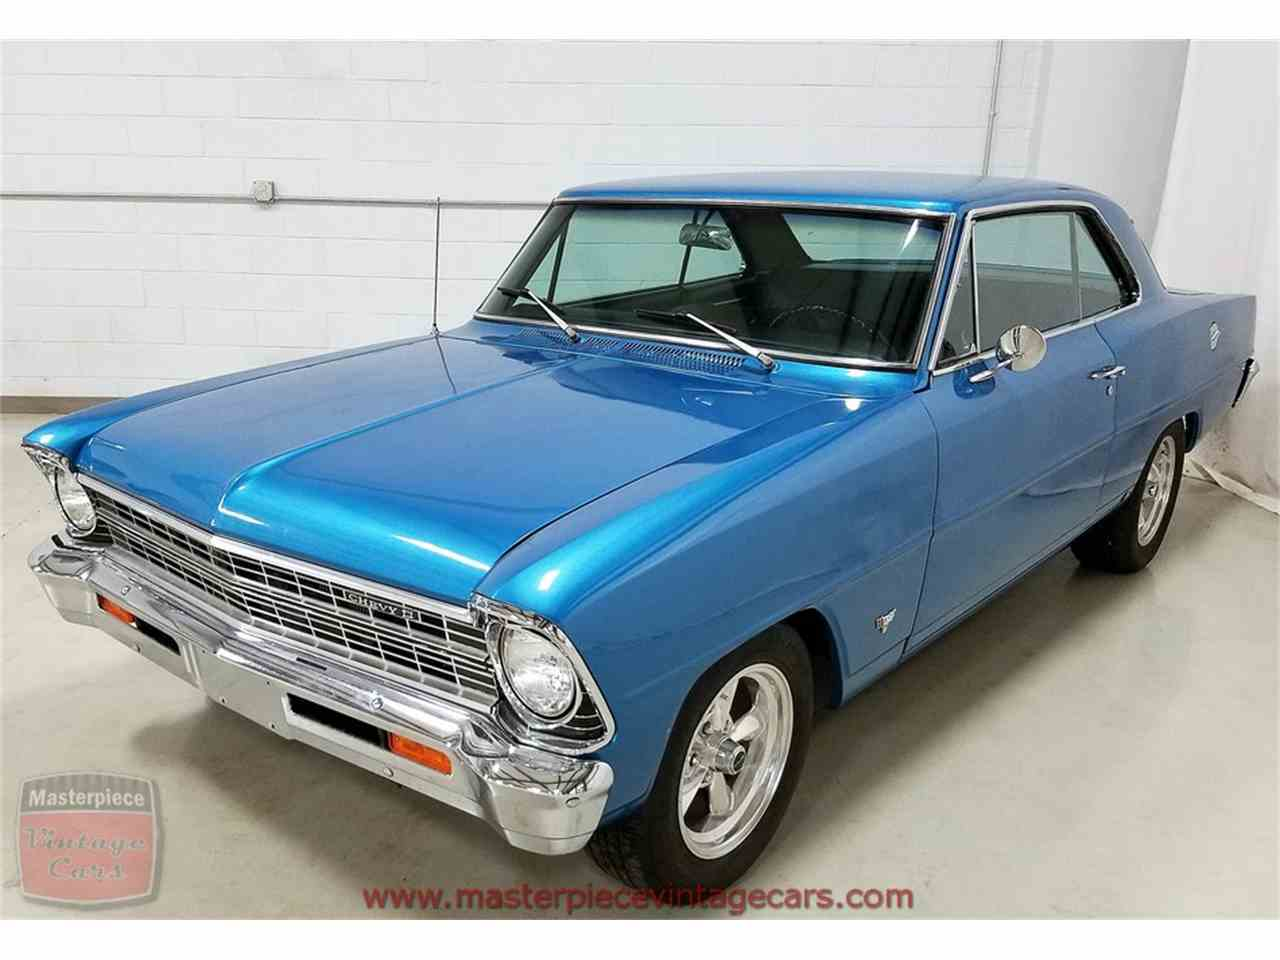 All Chevy chevy 2 : All Chevy » 1967 Chevy 2 Nova - Old Chevy Photos Collection, All ...